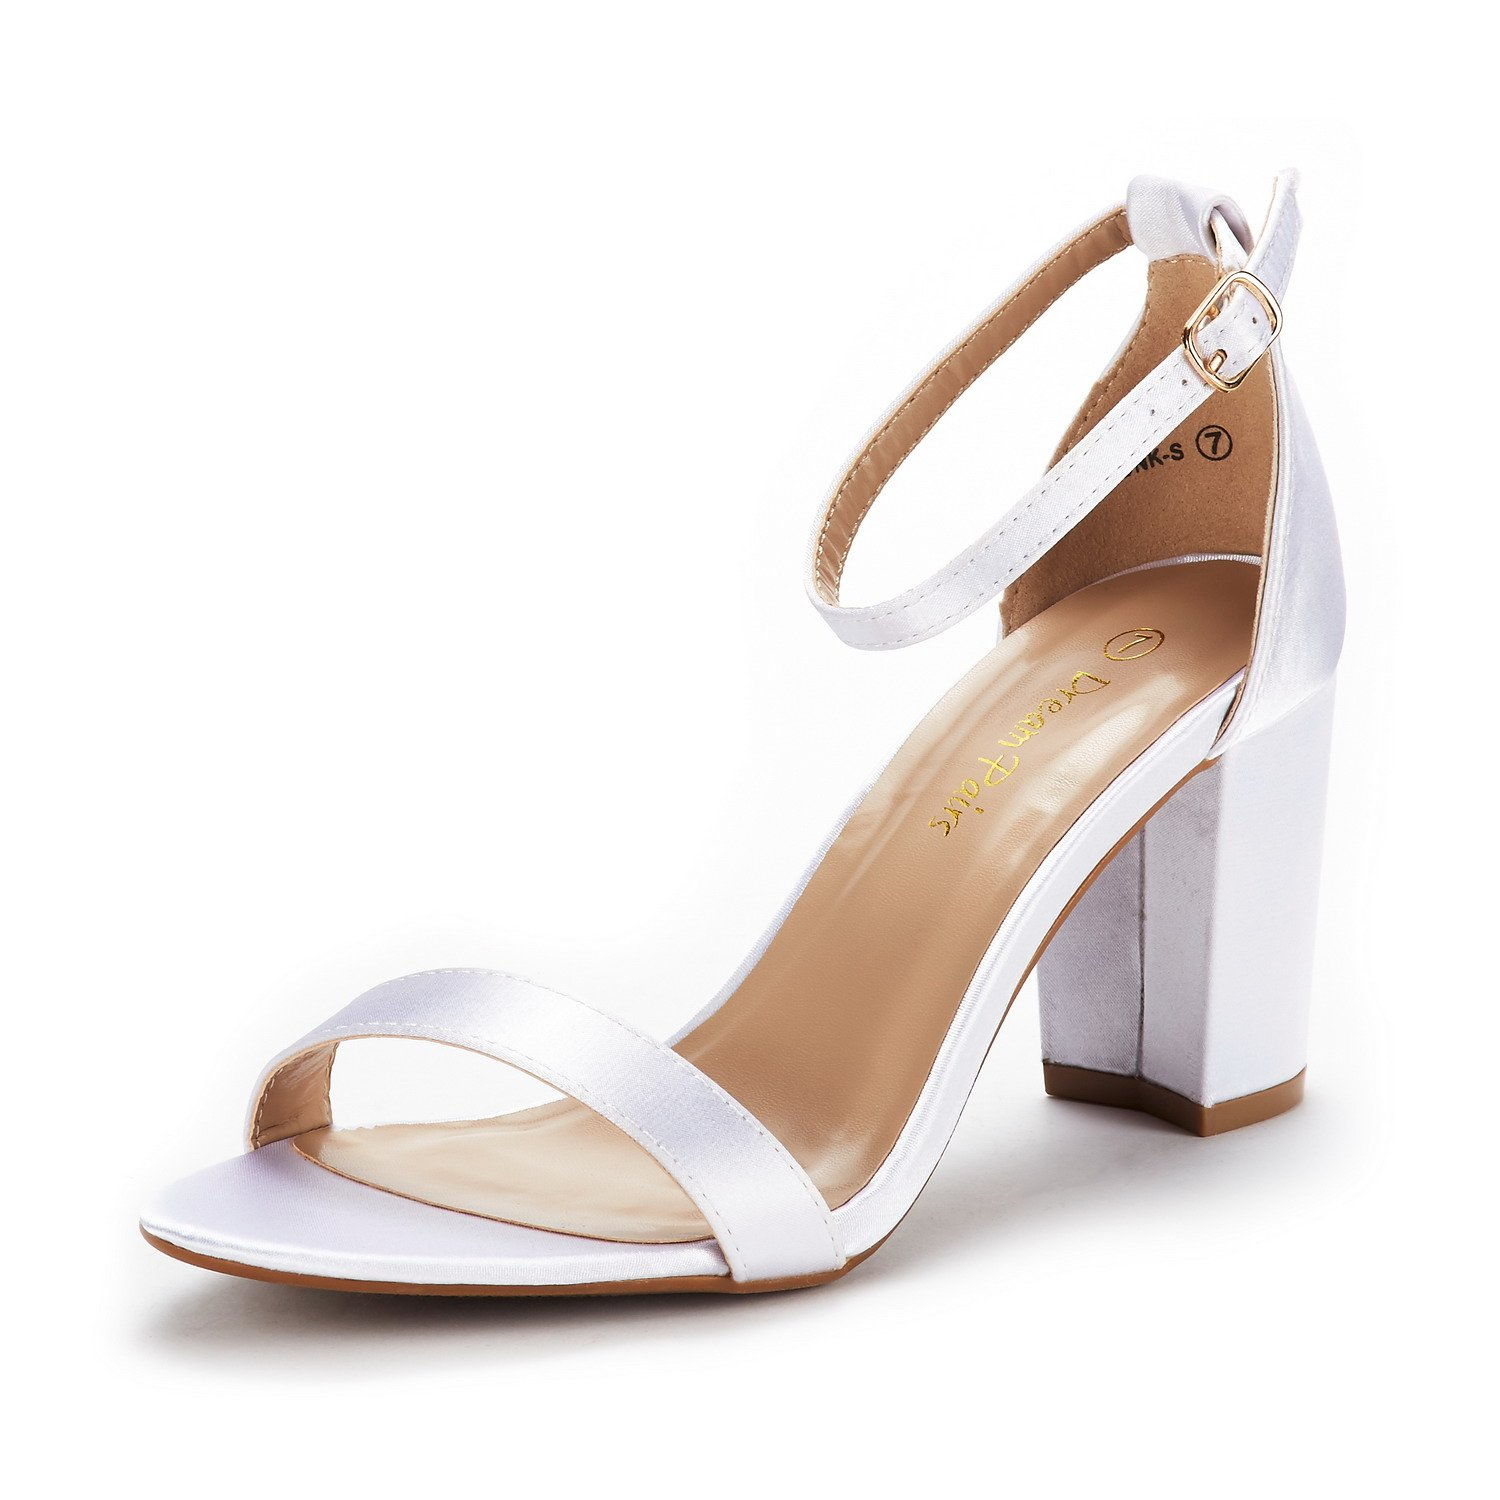 DREAM PAIRS Women's Chunk White Satin Low Heel Pump Sandals Size 8 M US